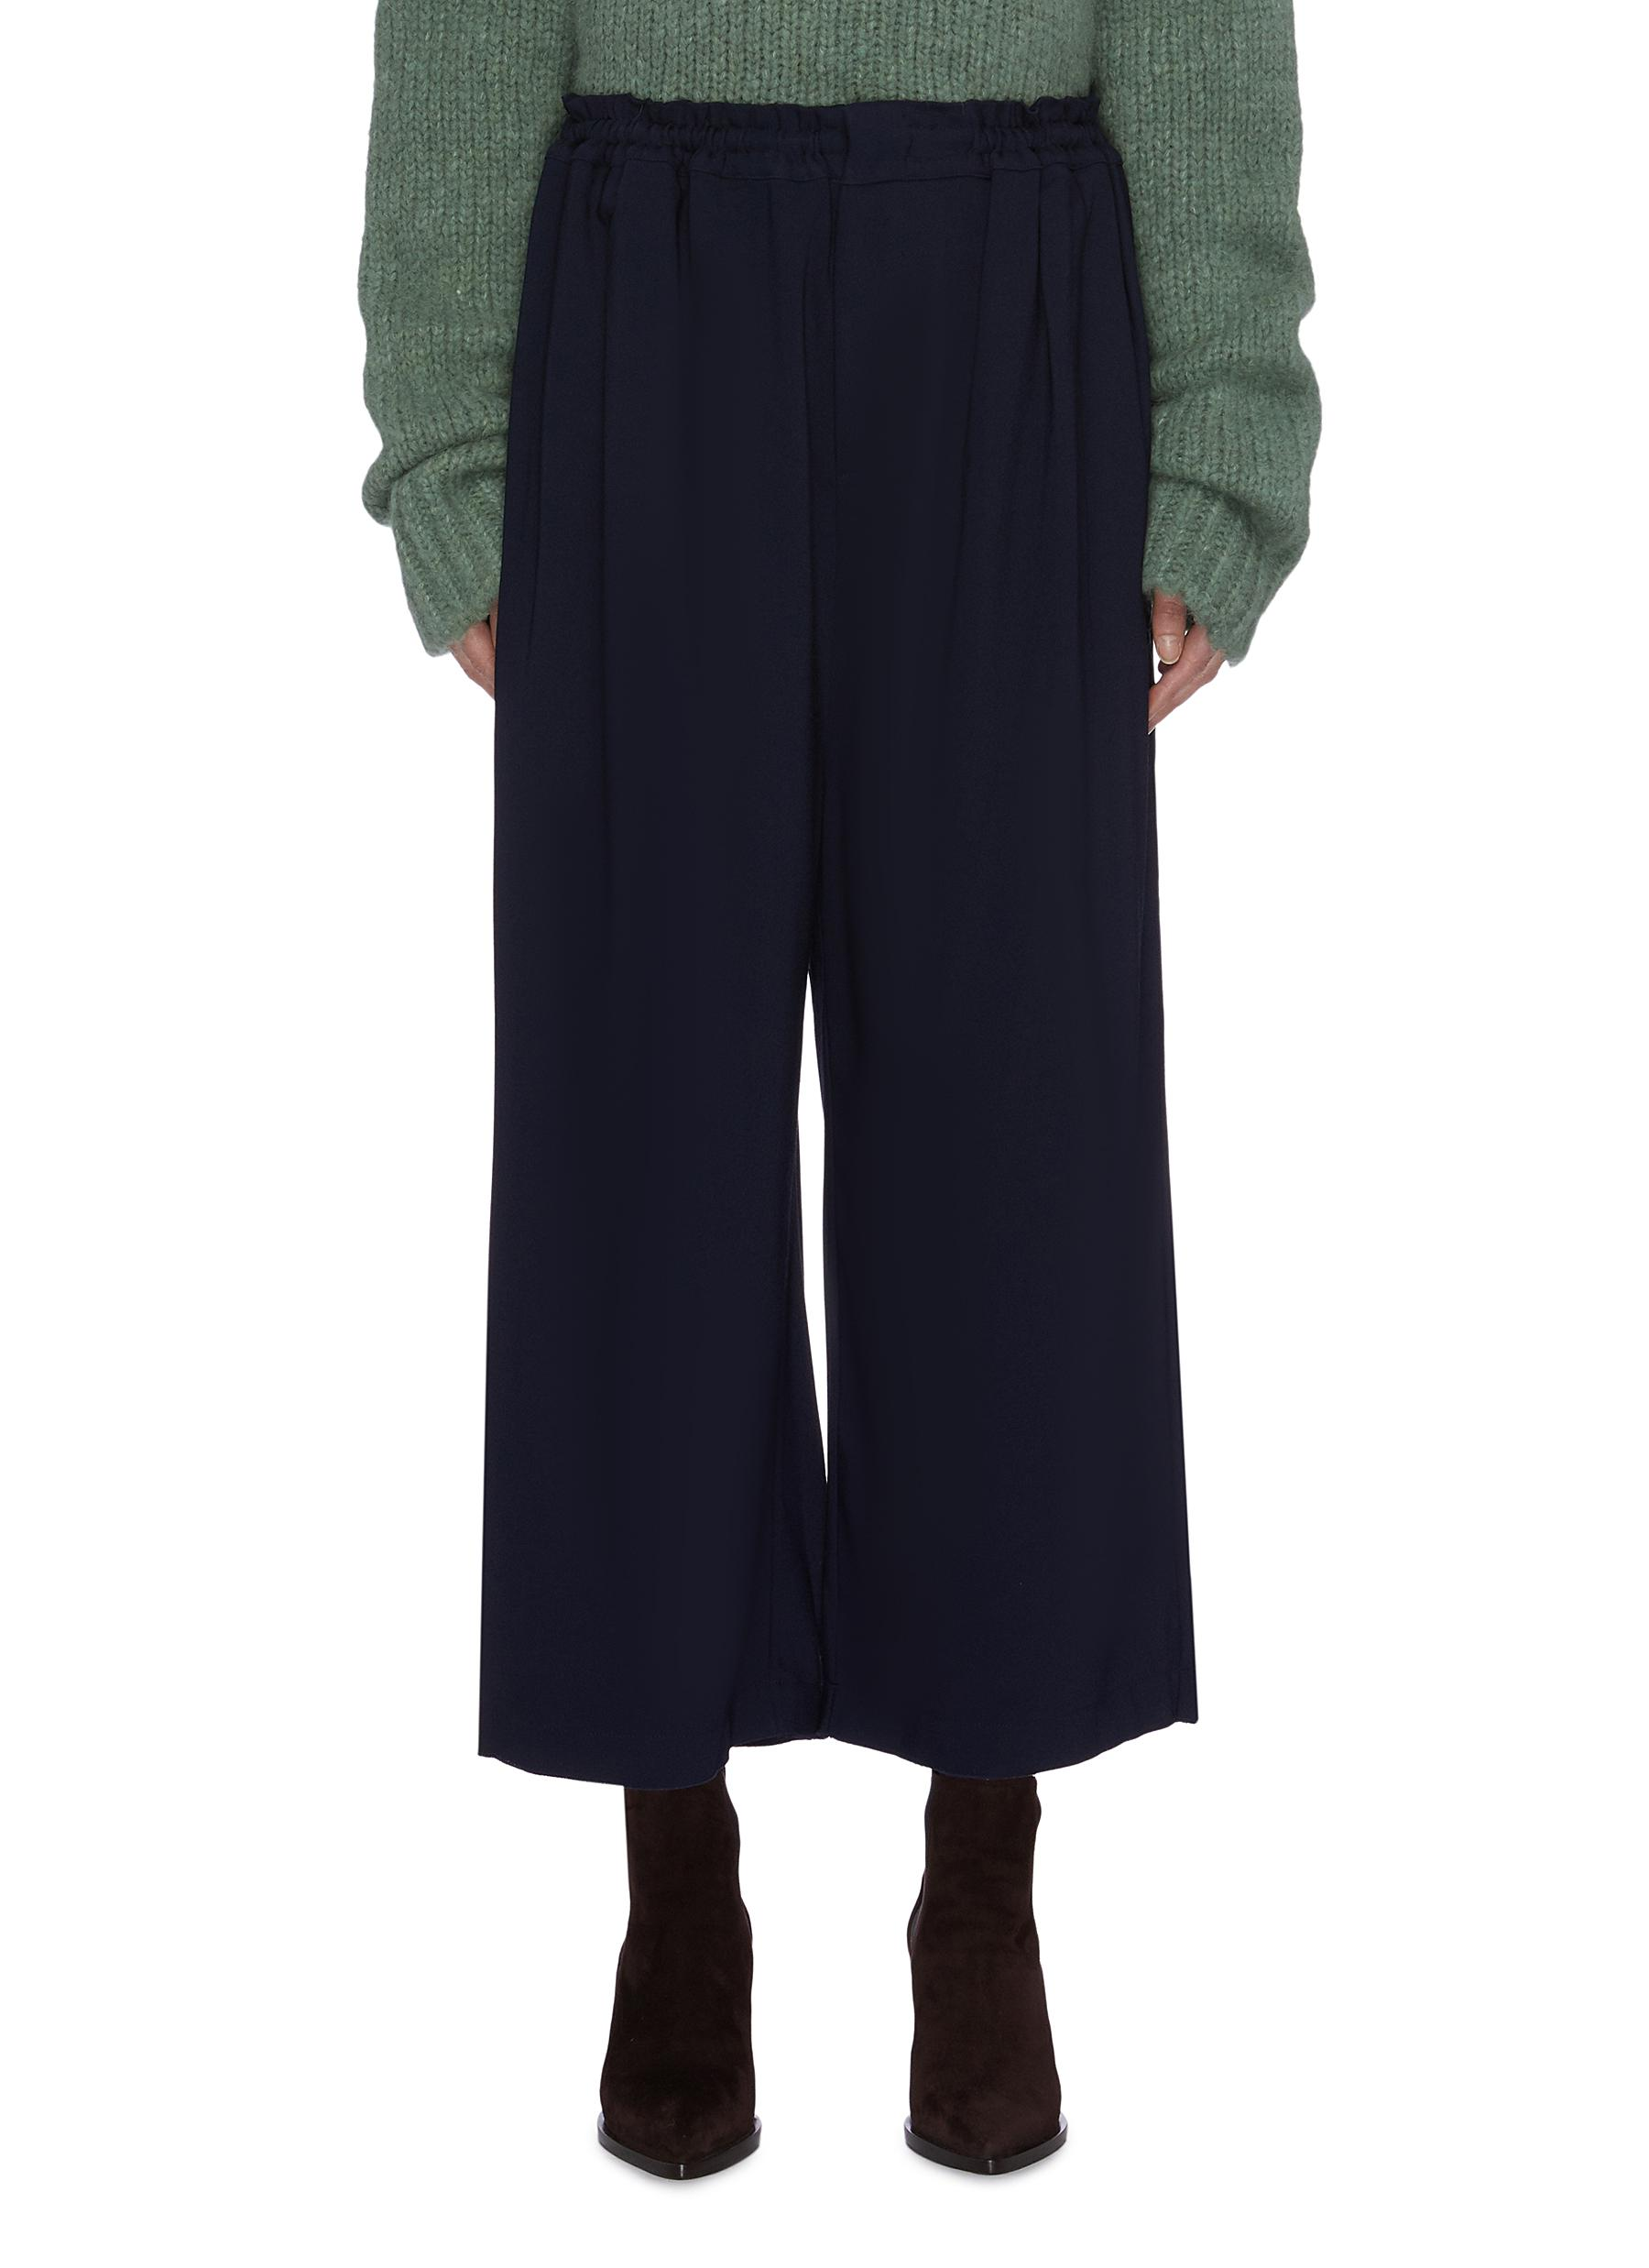 Elastic waistband culottes by Ms Min